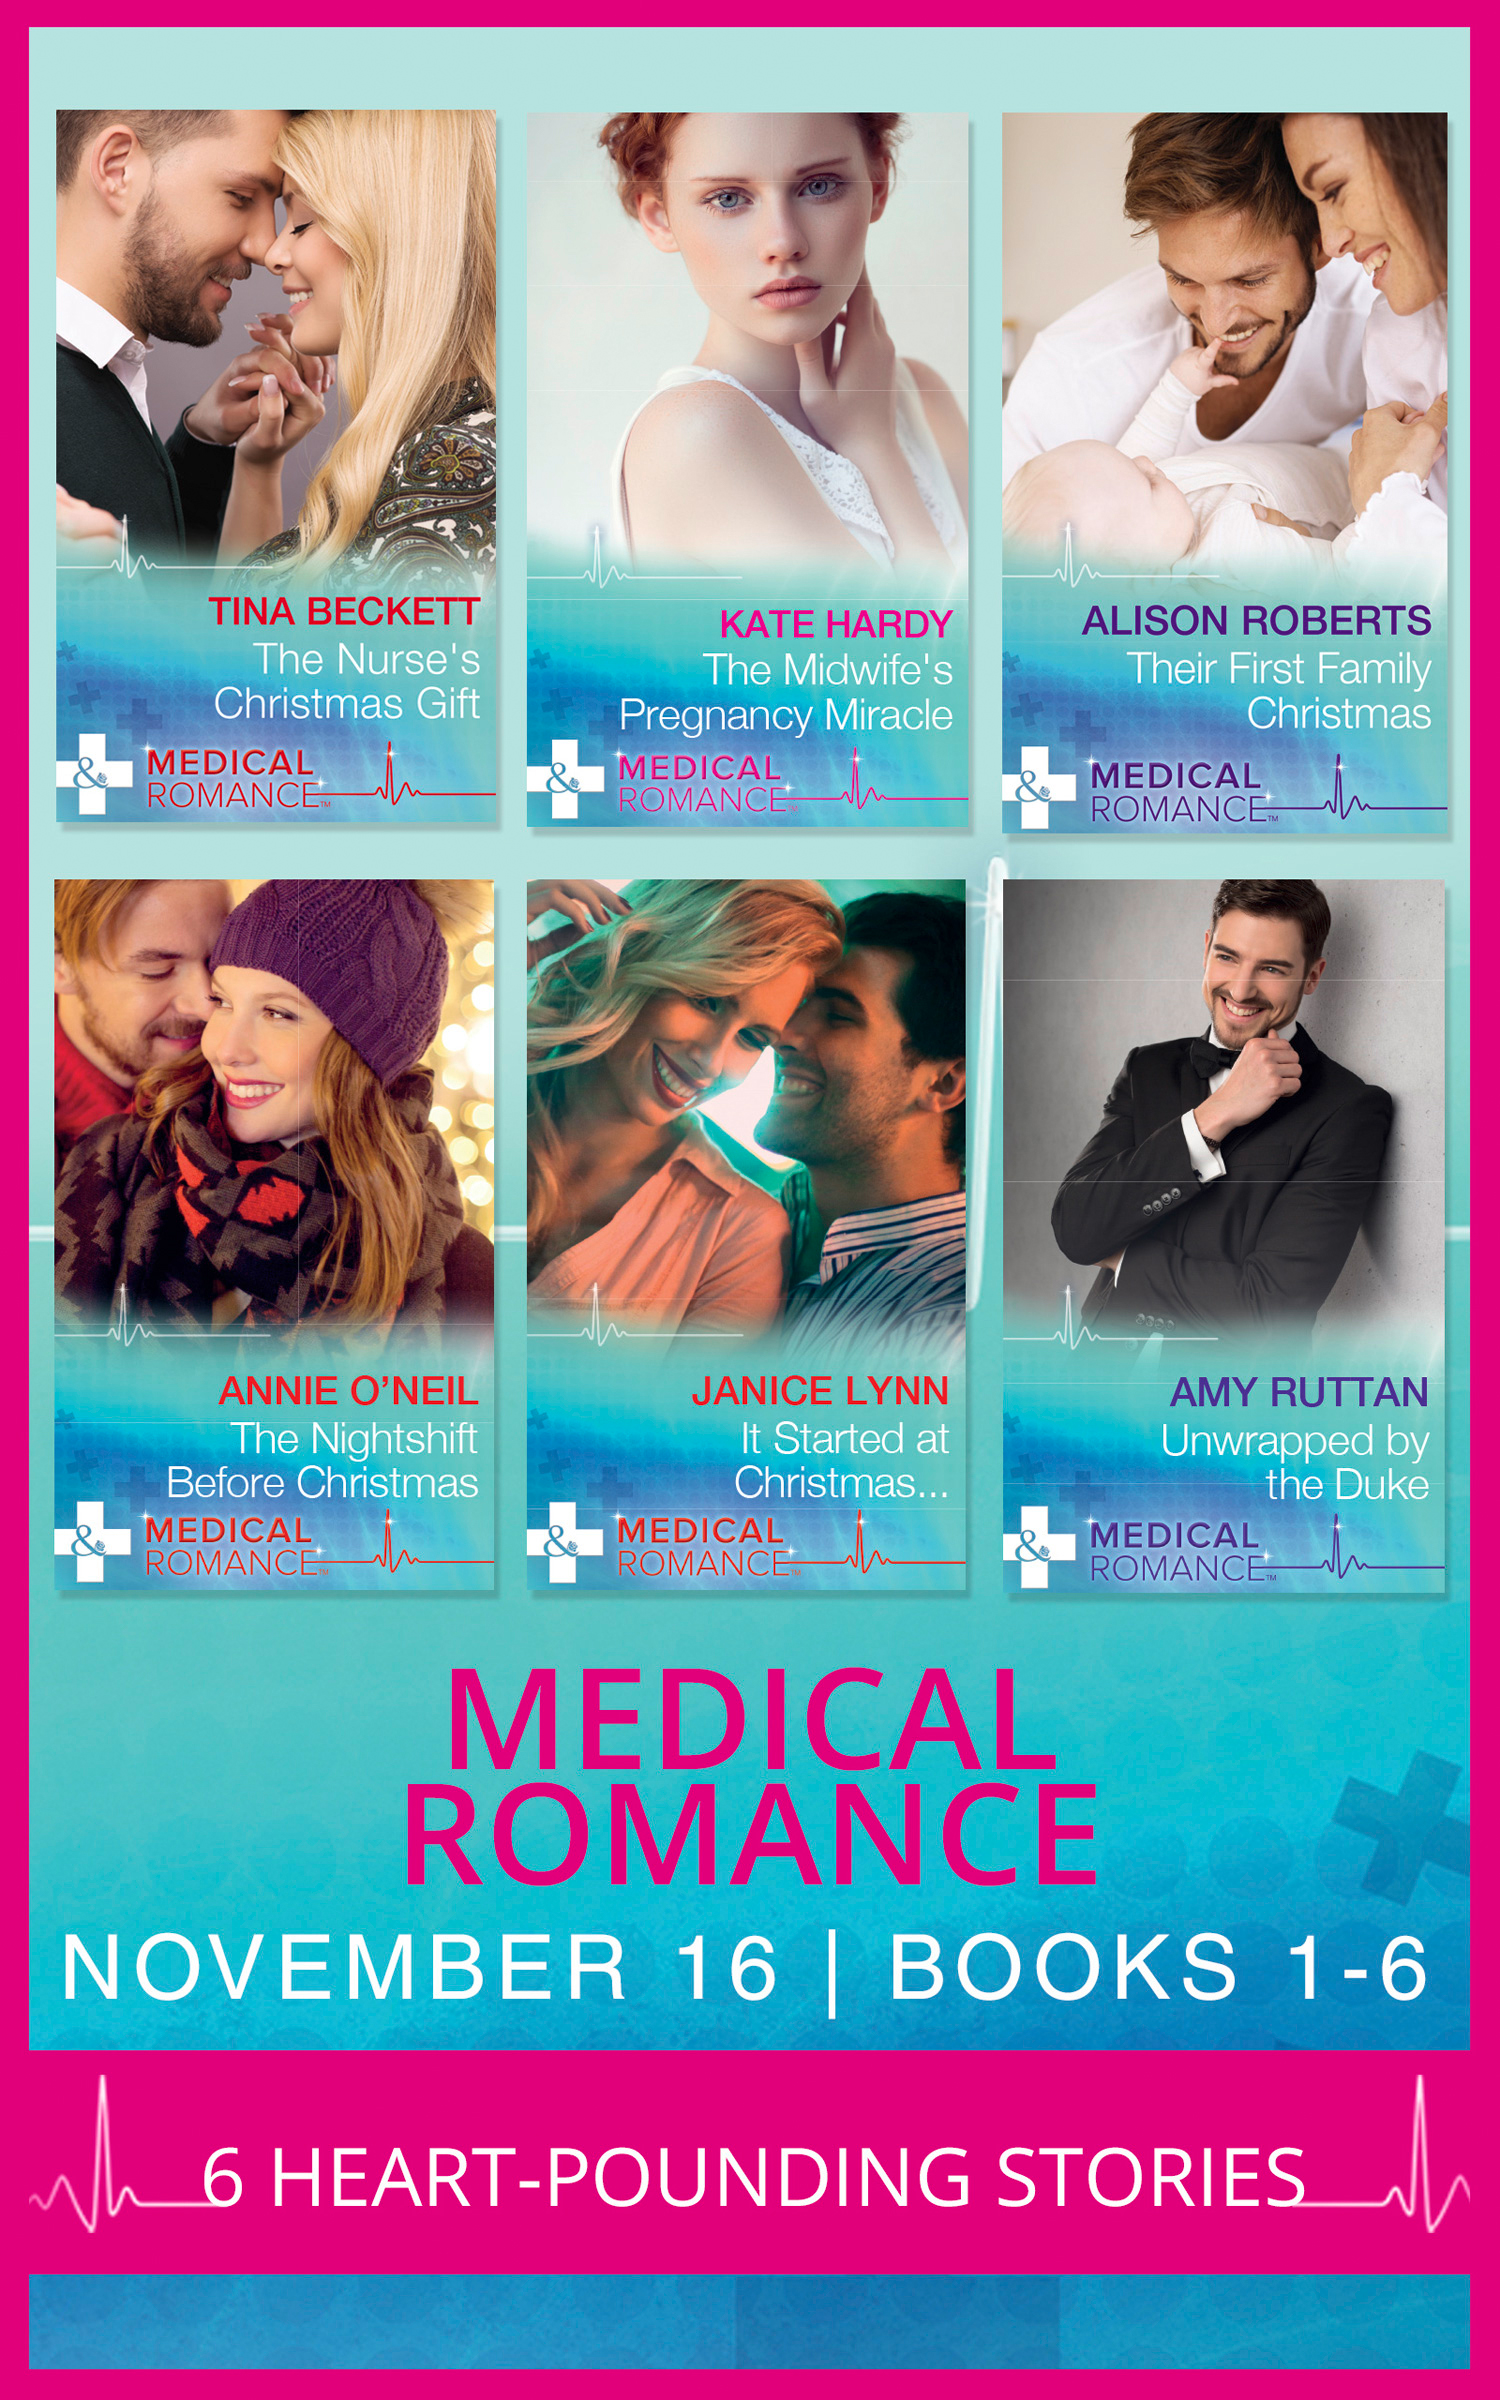 Medical Romance November 2016 Books 1-6